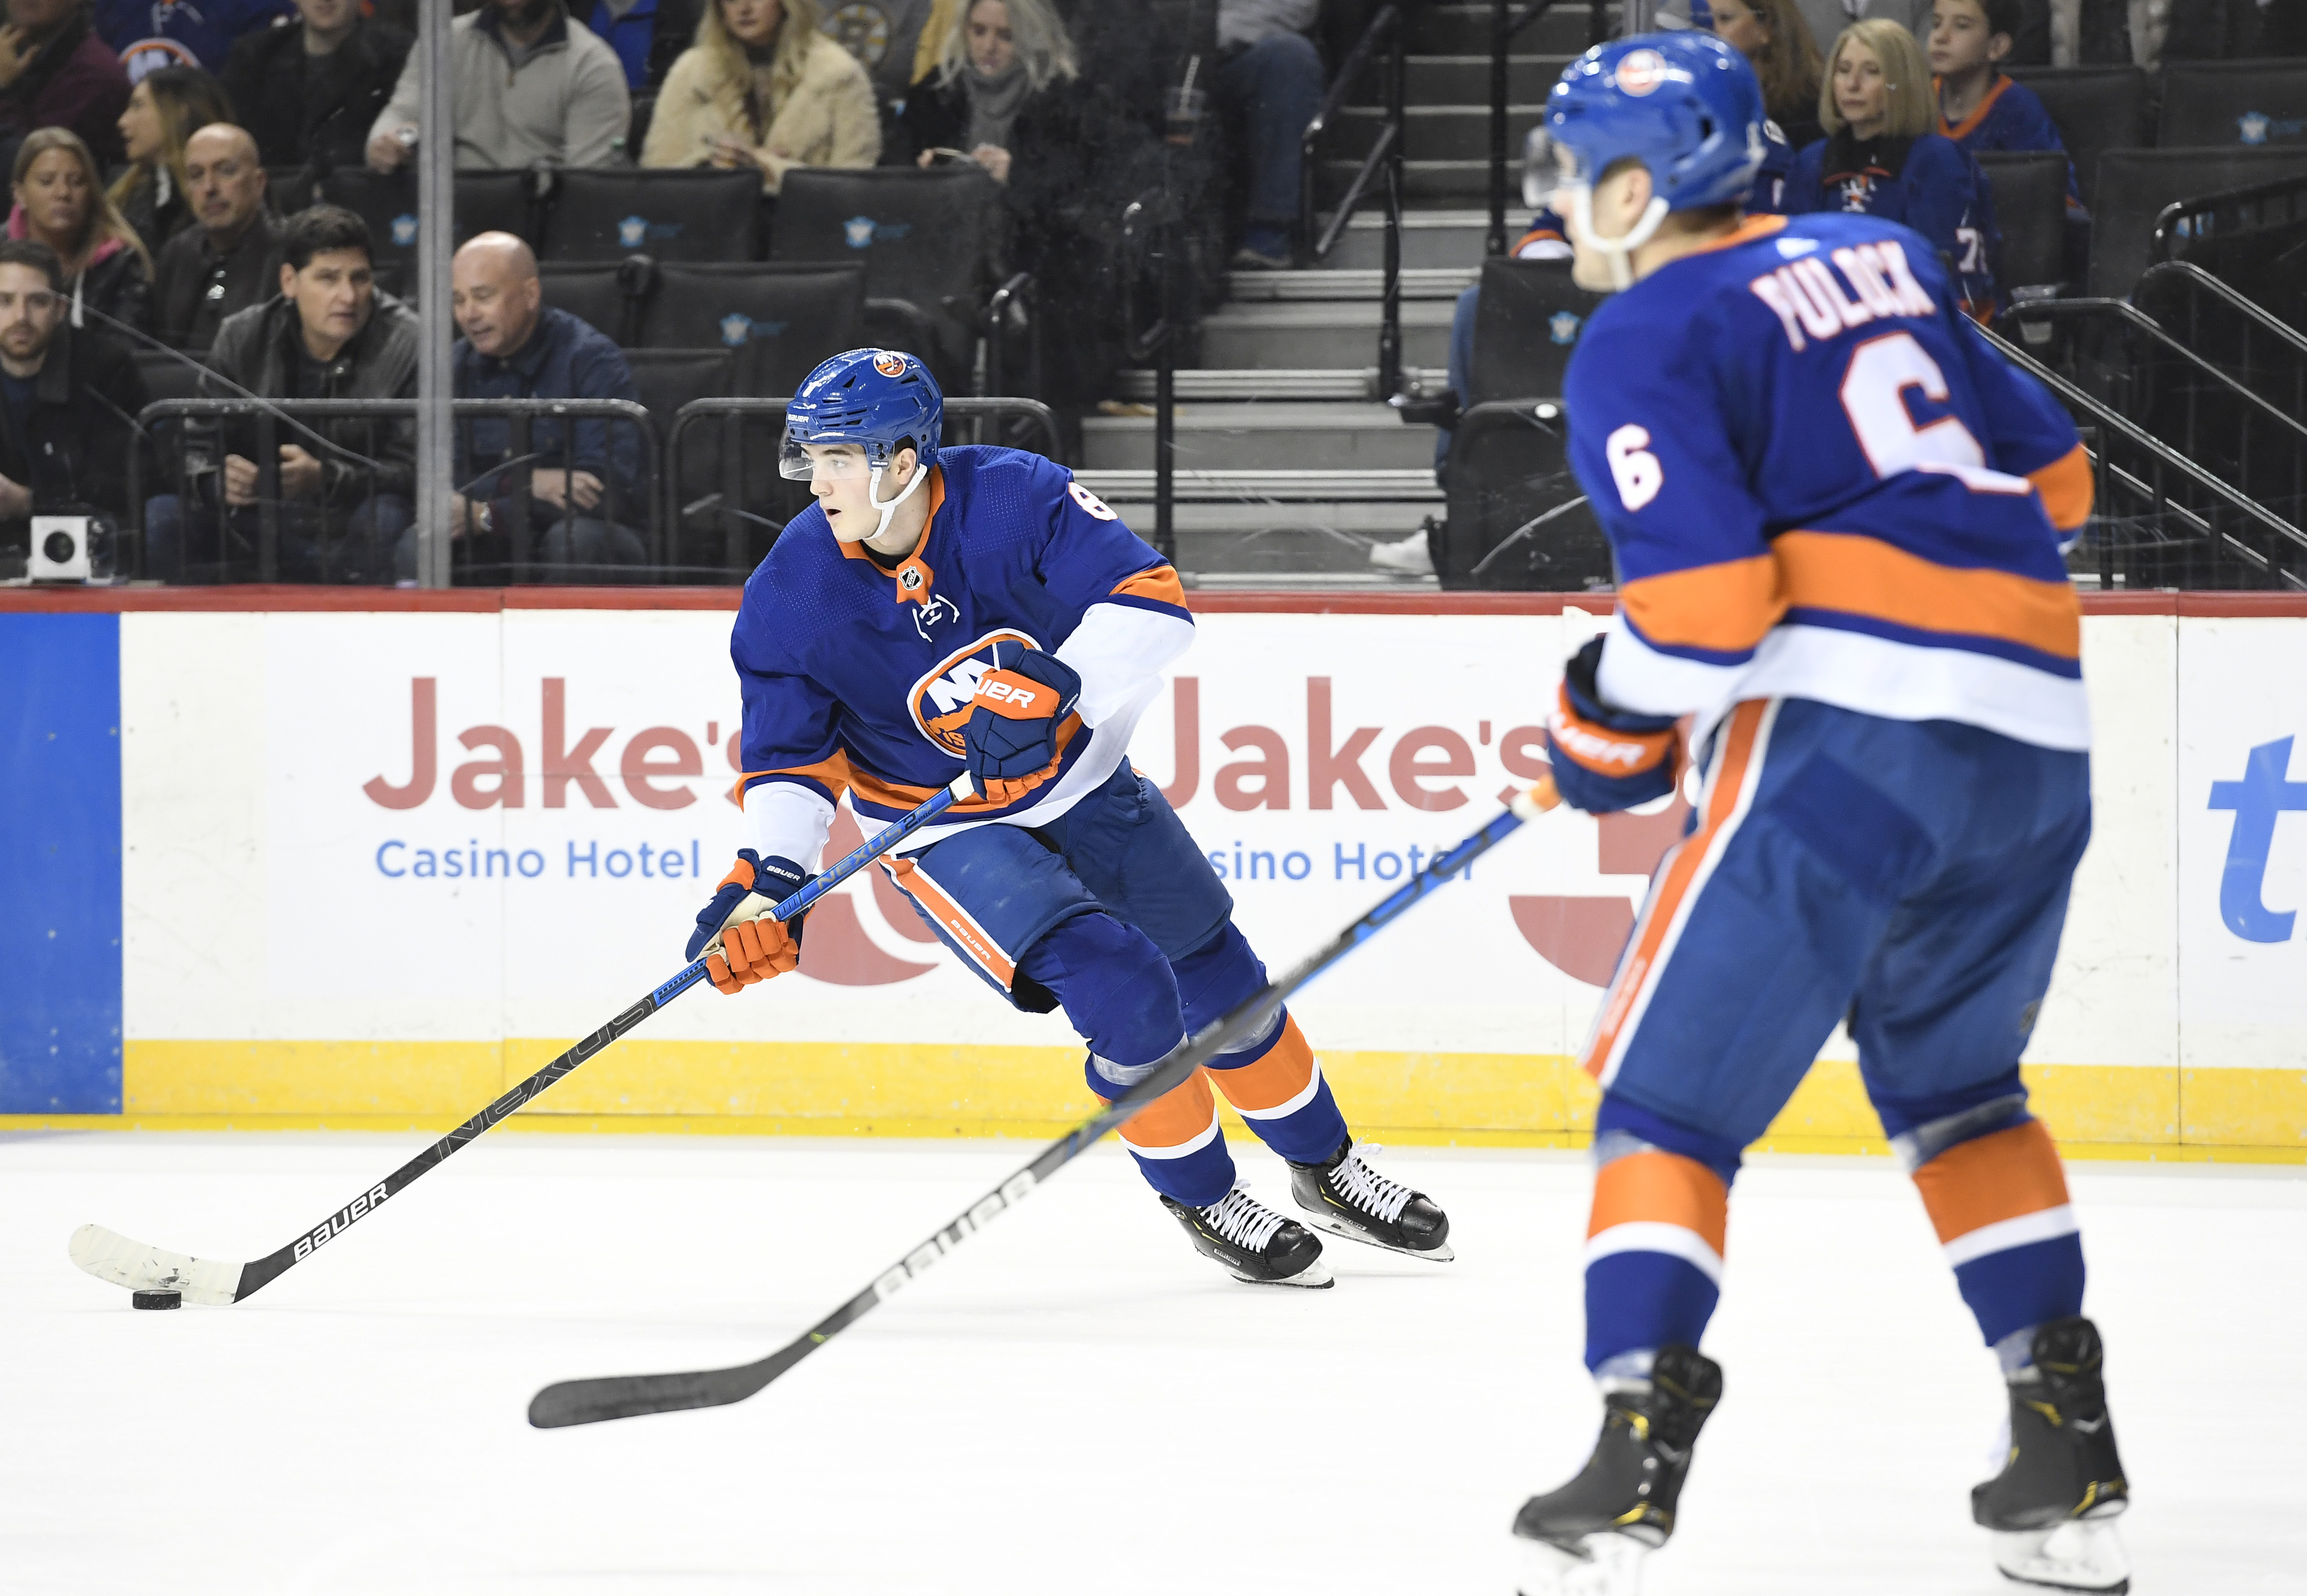 Jan 11, 2020; Brooklyn, New York, USA; New York Islanders defenseman Noah Dobson (8) skates with the puck during the first period against the Boston Bruins at Barclays Center. Mandatory Credit: Sarah Stier-USA TODAY Sports